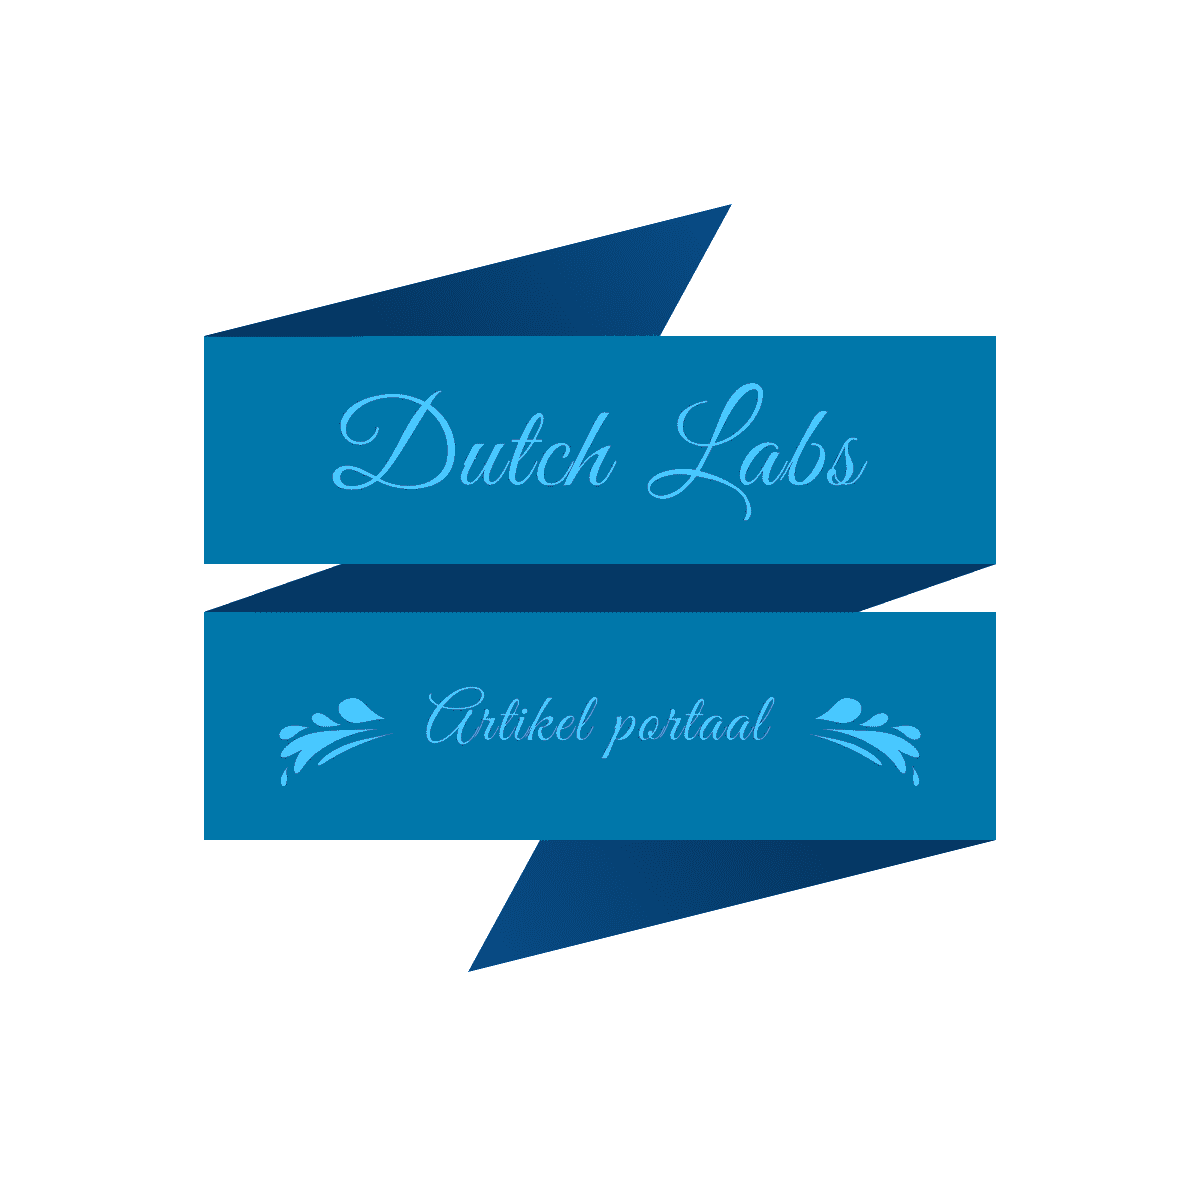 Dutchlabs